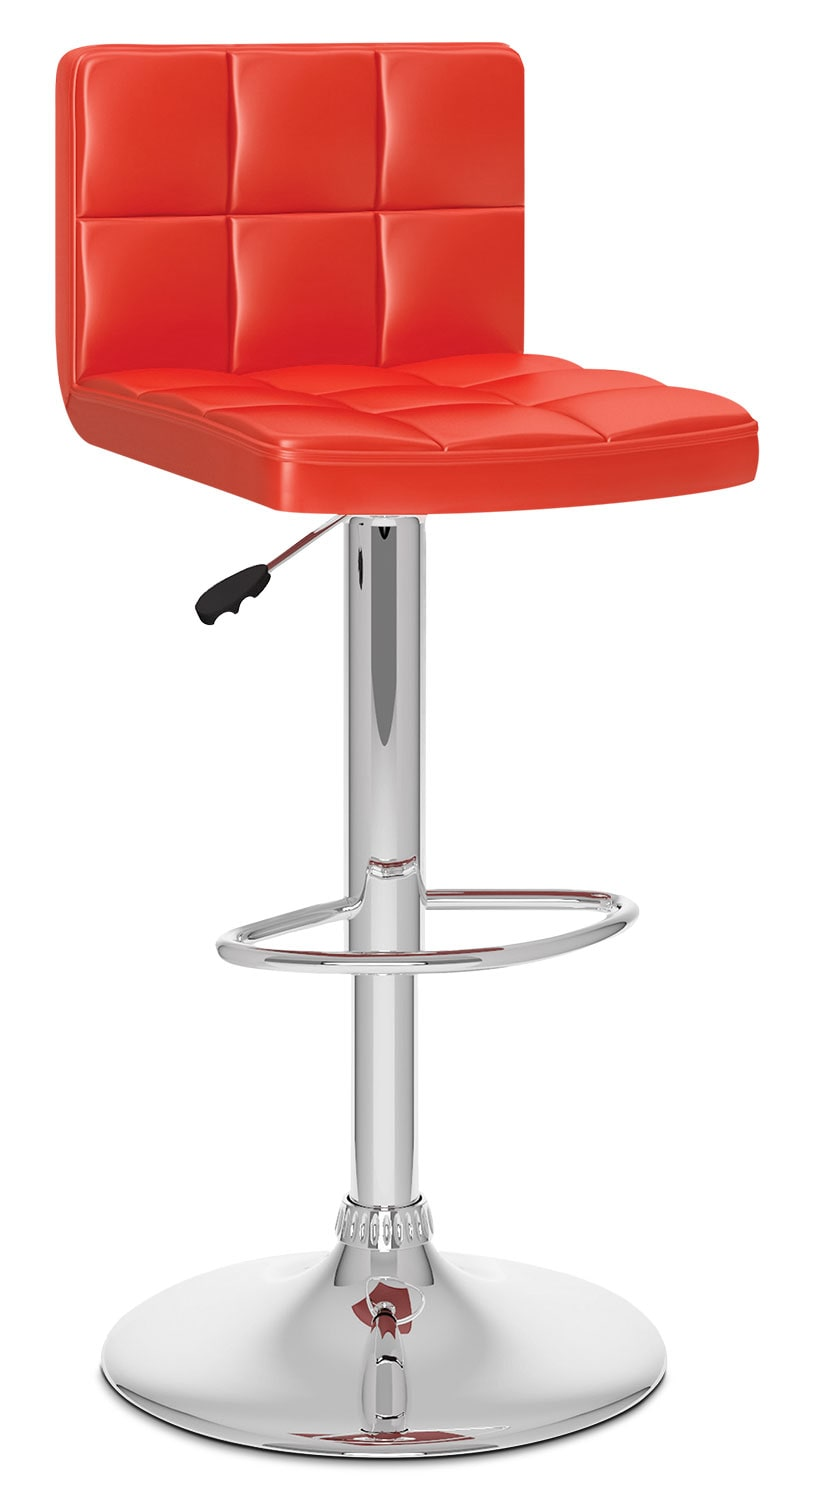 Dining Room Furniture - CorLiving High Back Adjustable Bar Stool - Red